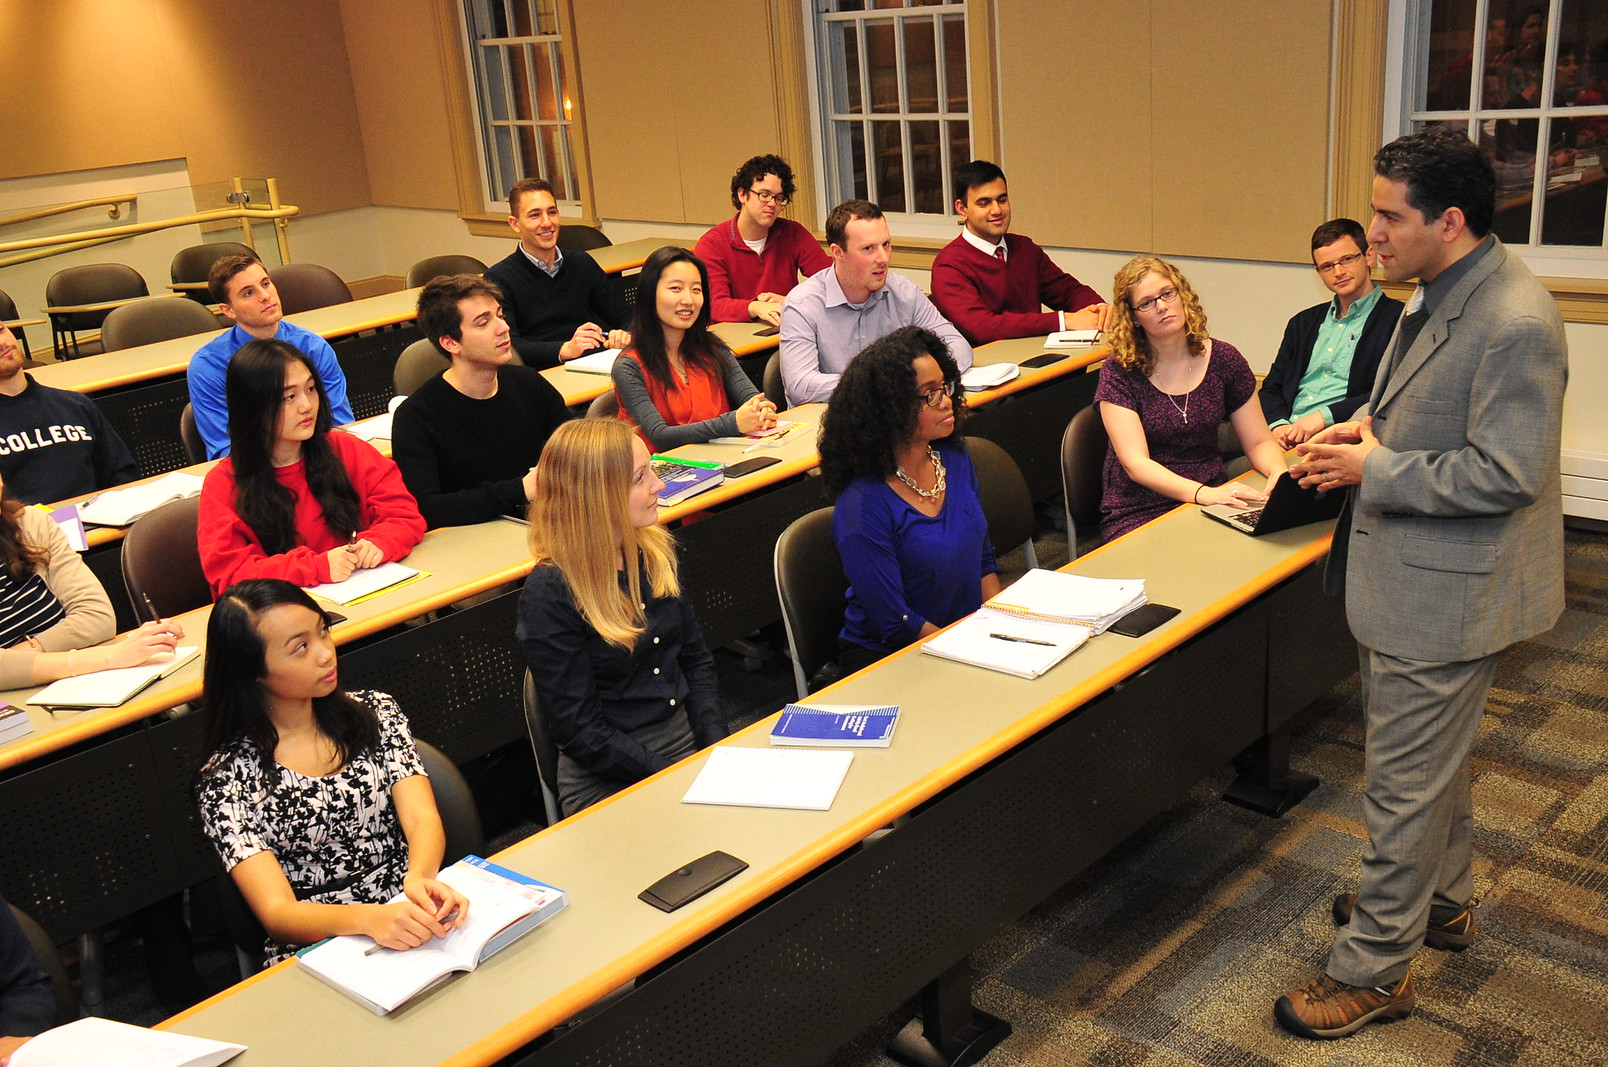 Professor lecturing students at Rockefeller College